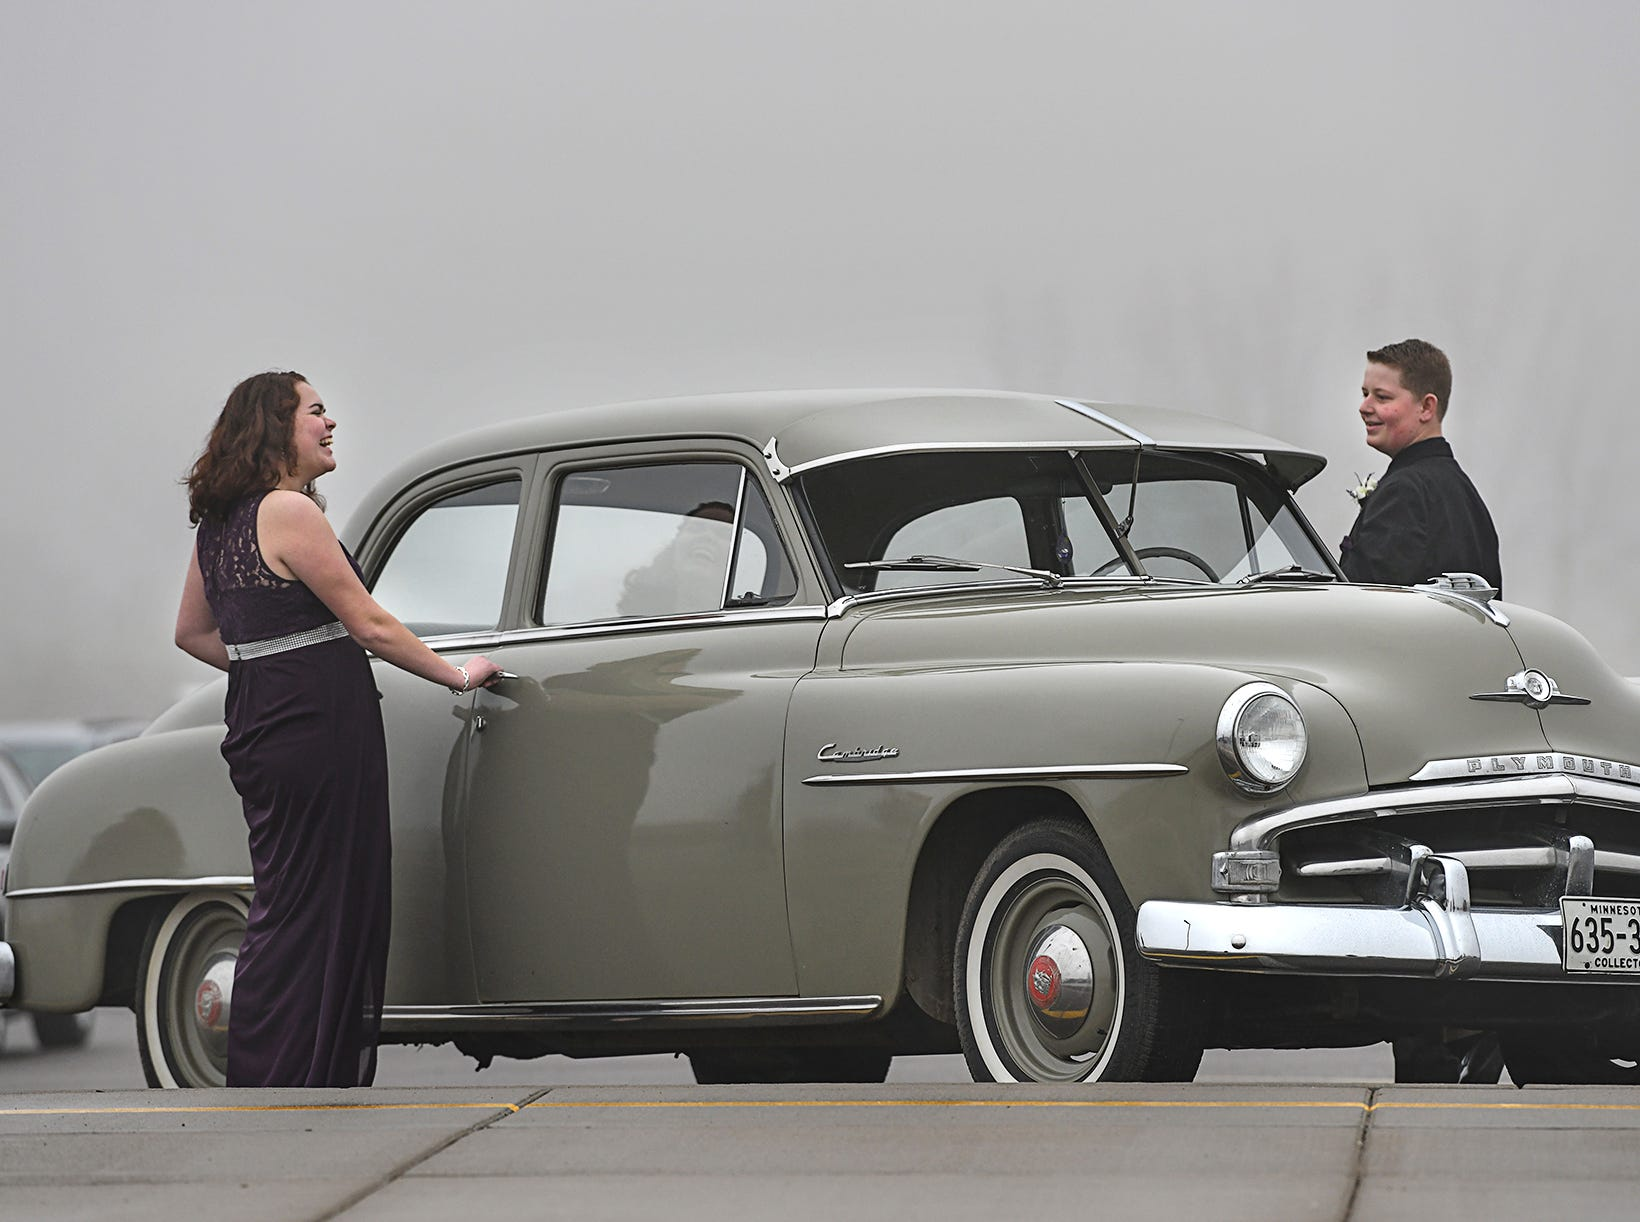 """Avery Kompelien and Nicole Pachan get ready to leave in a vintage 1952 Plymouth after taking their turn in the prom grand march Saturday, April 6, at Albany High School. This year's Albany prom theme was """"The Great Gatsby."""" For more photos go to www.sctimes.com."""